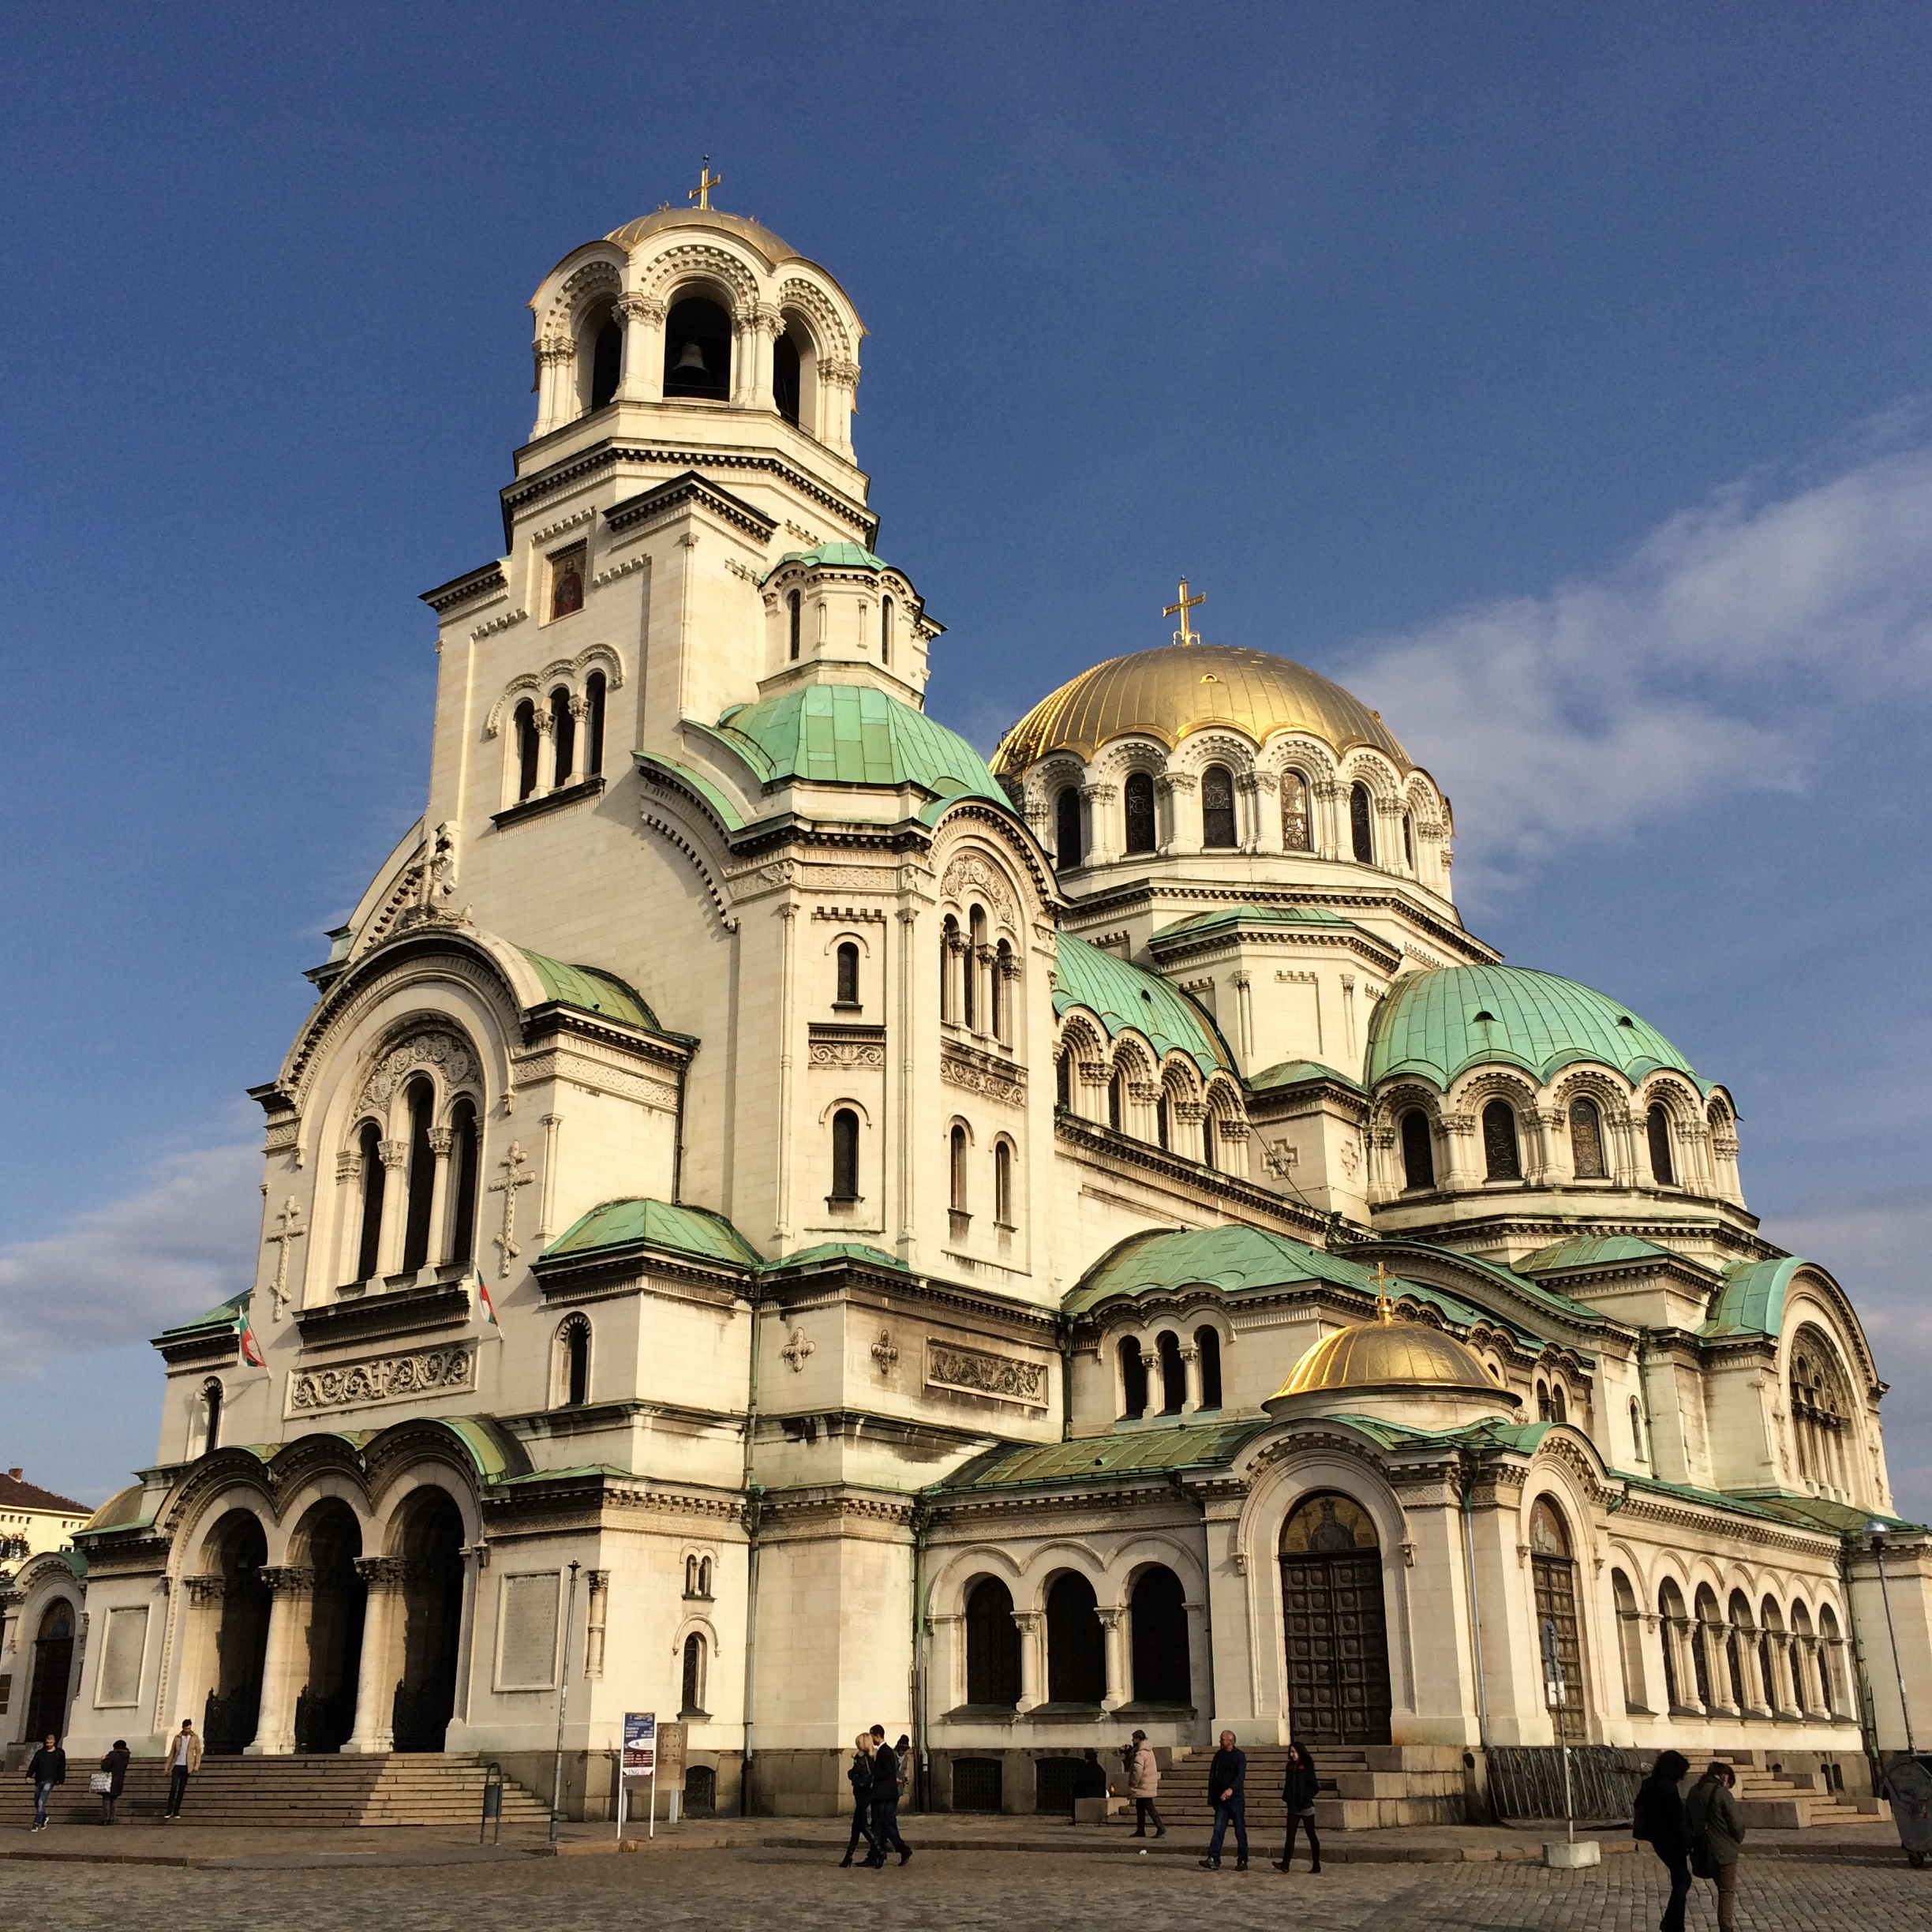 The Alexander Nevsky Cathedral is unbelievably large. I've never seen such a large church outside of the Vatican.